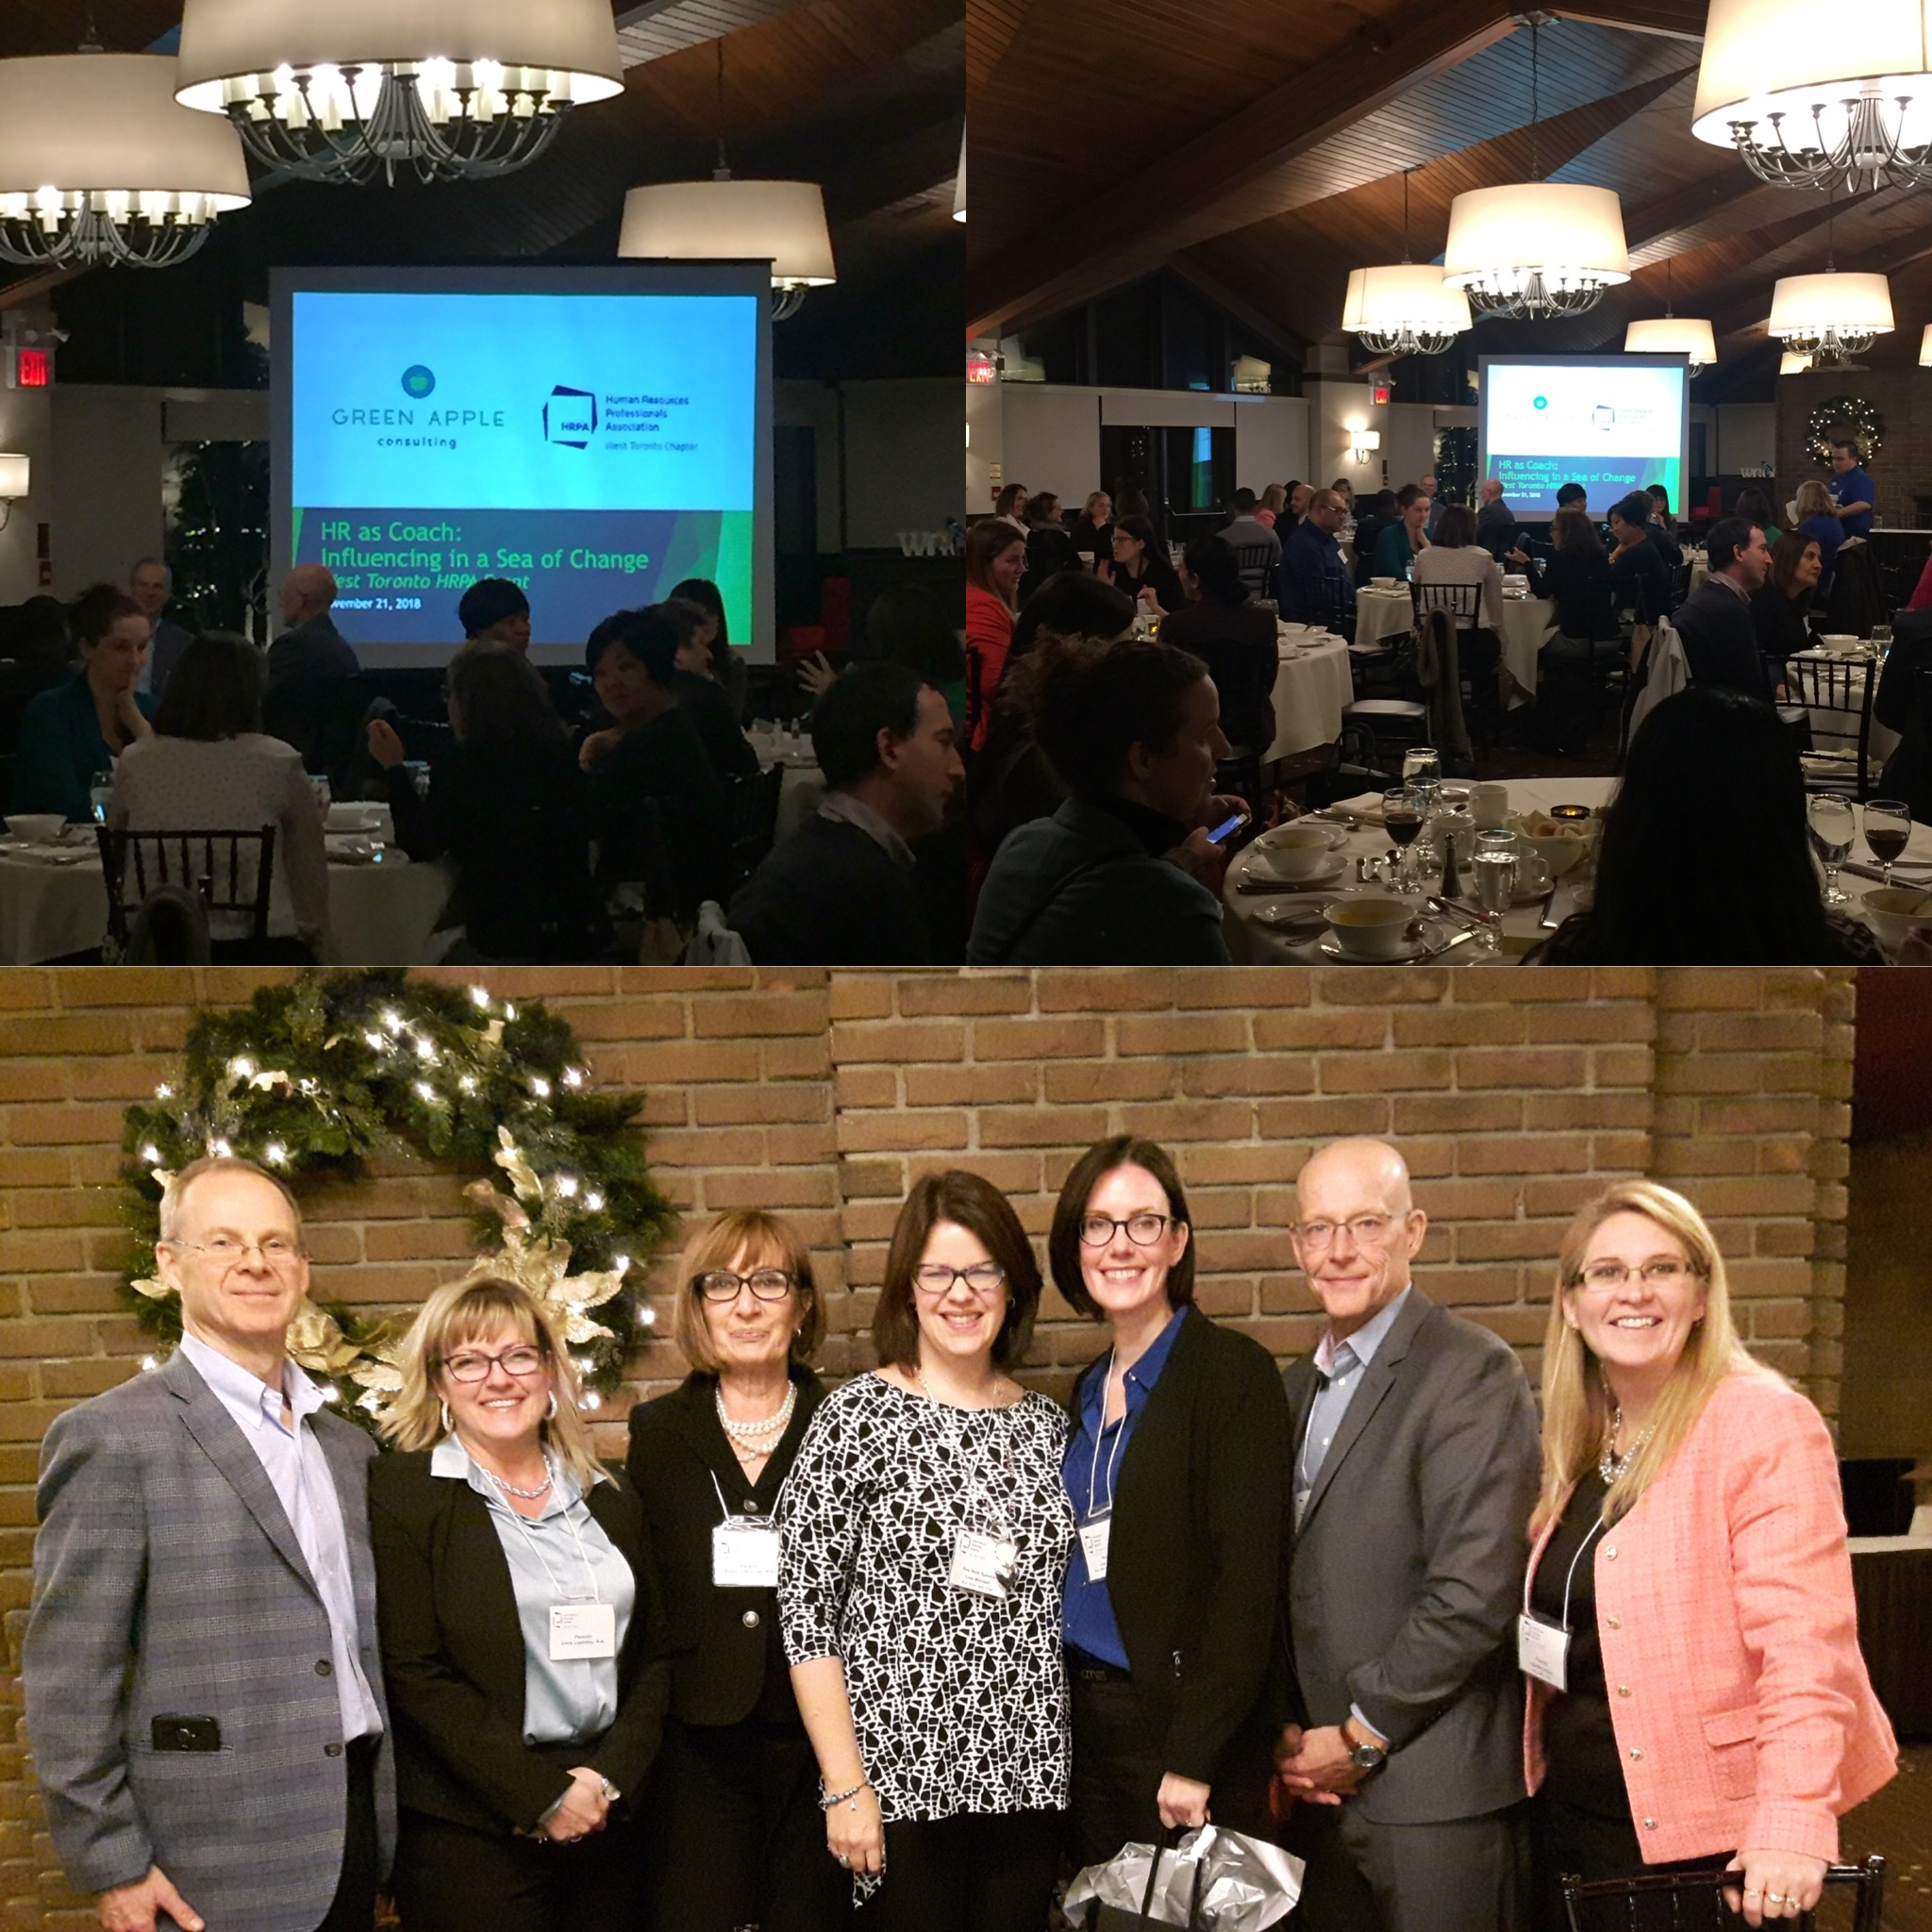 Keynote -HR as Coach: Influencing in a Sea of Change - I was honoured to deliver the event Keynote at the West Toronto HRPA Chapter Event on November 21, 2018. The event drew over 70 HR Leaders to hear my approach to change management for HR professionals, followed by a moderated panel discussion.See all the event details by clicking here.